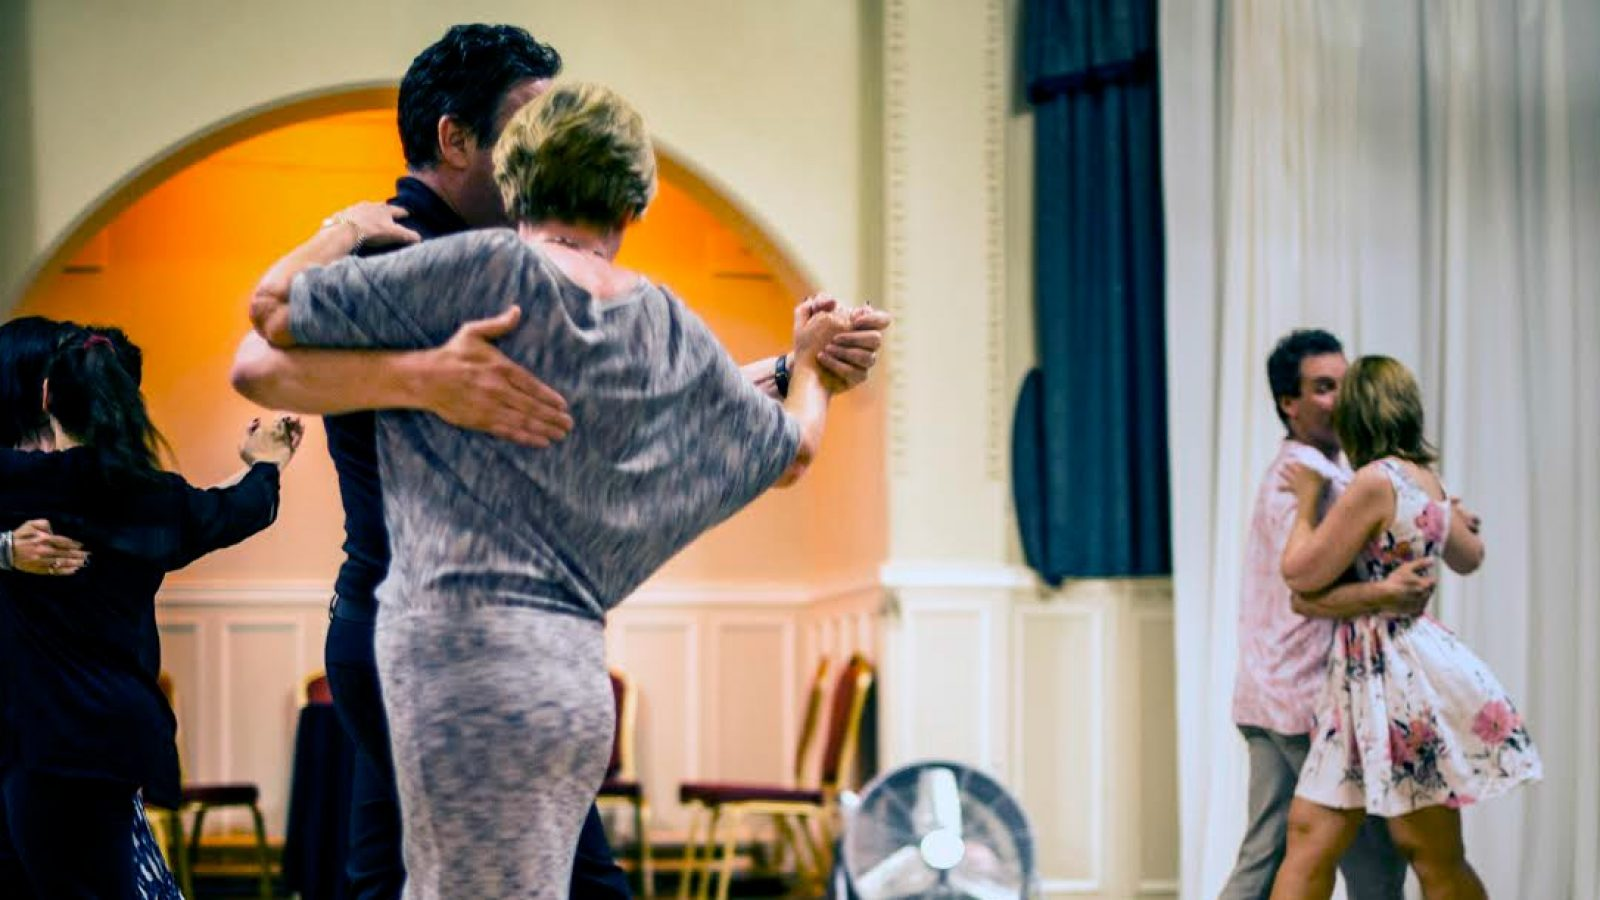 Dancing classes are back at the Cinnamon Club in September